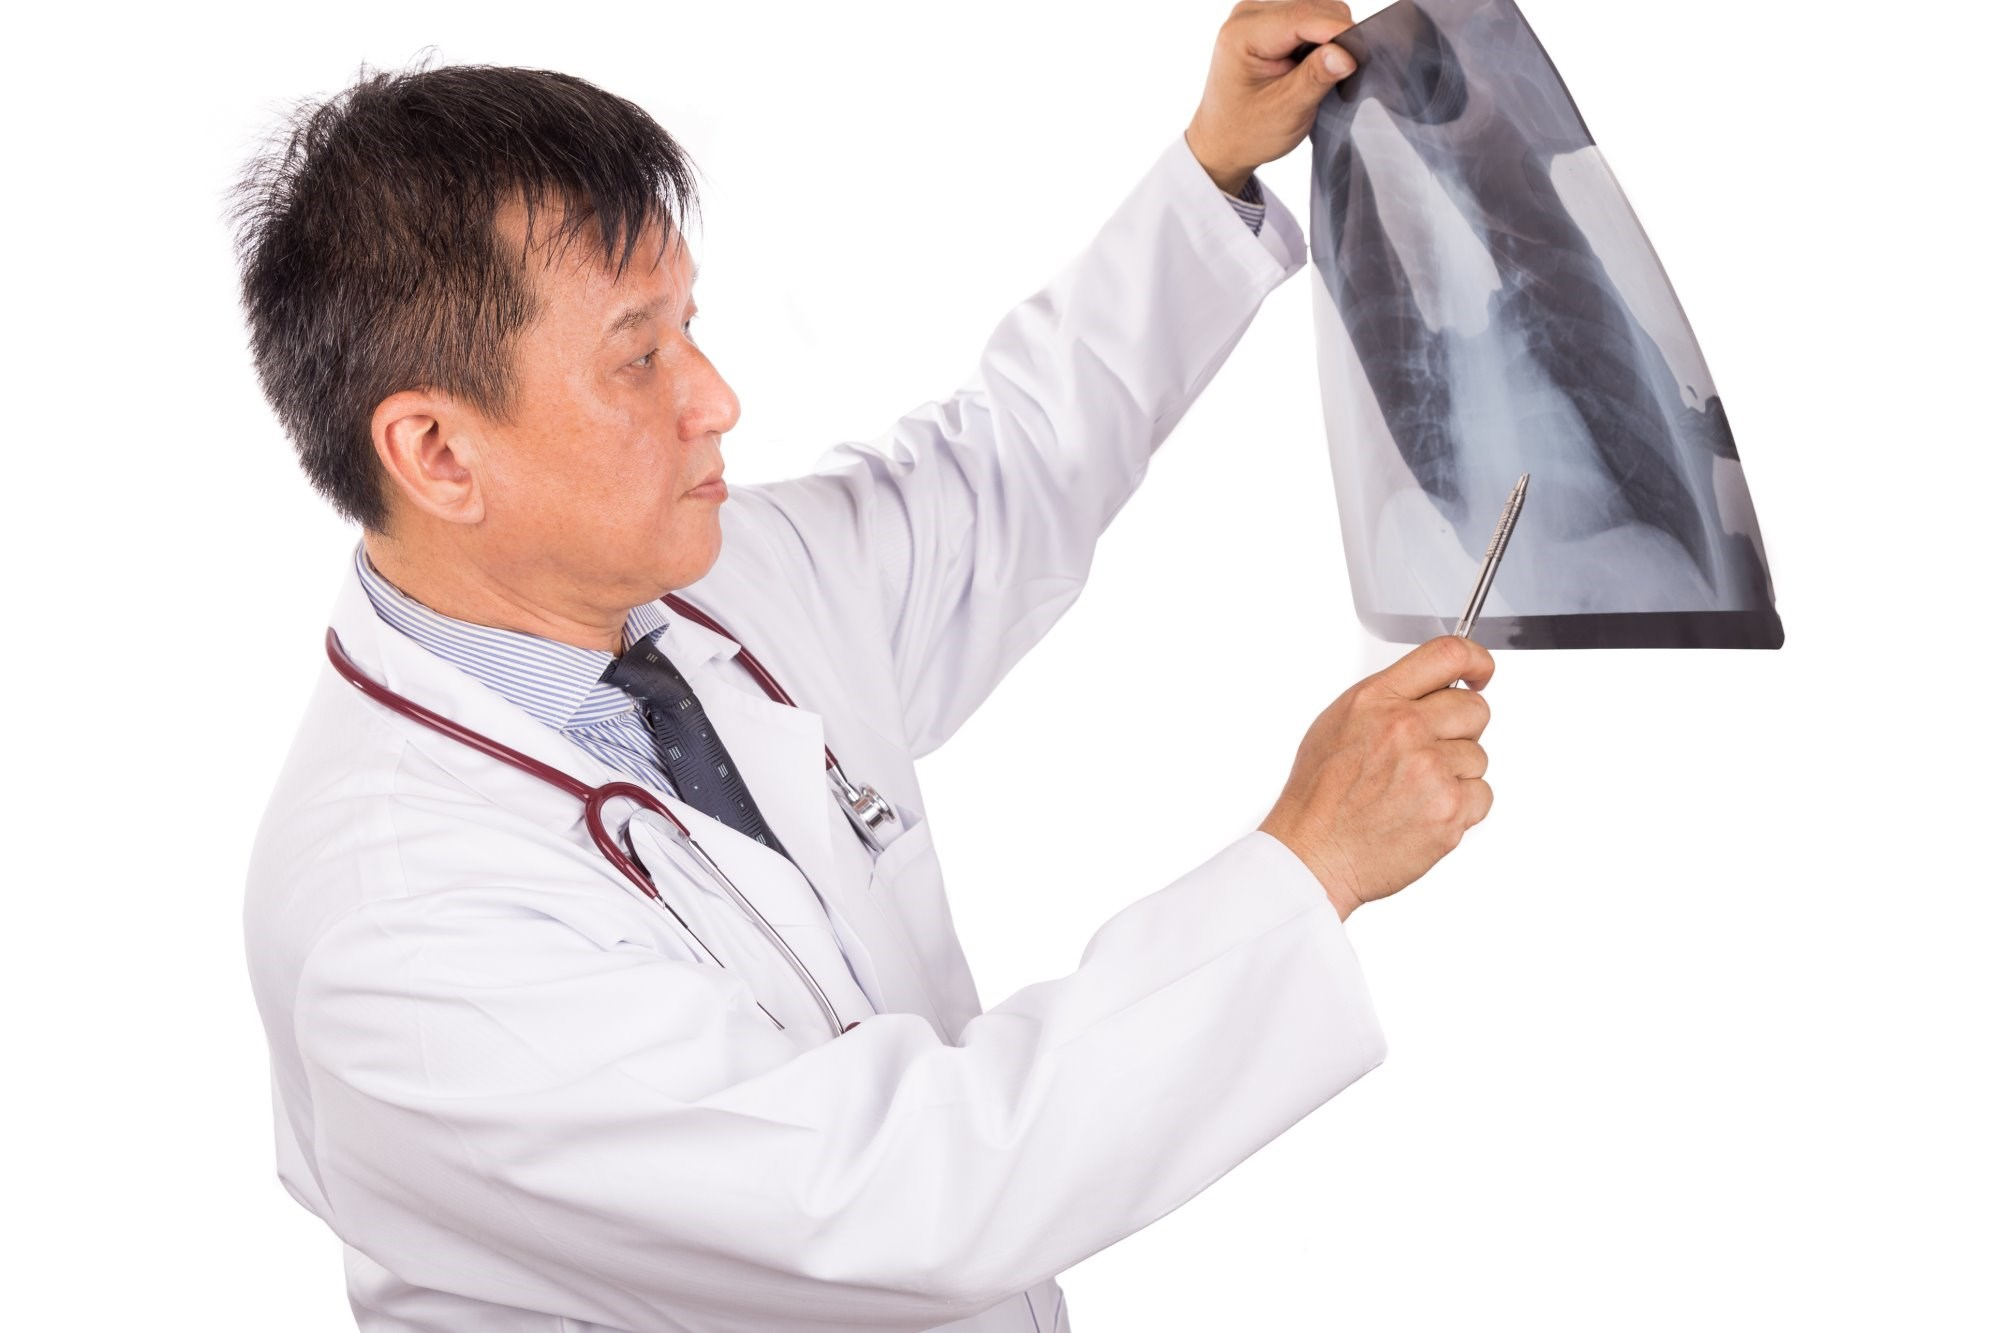 Chest X-Rays May Miss Pulmonary Metastases in T1a RCC Patients